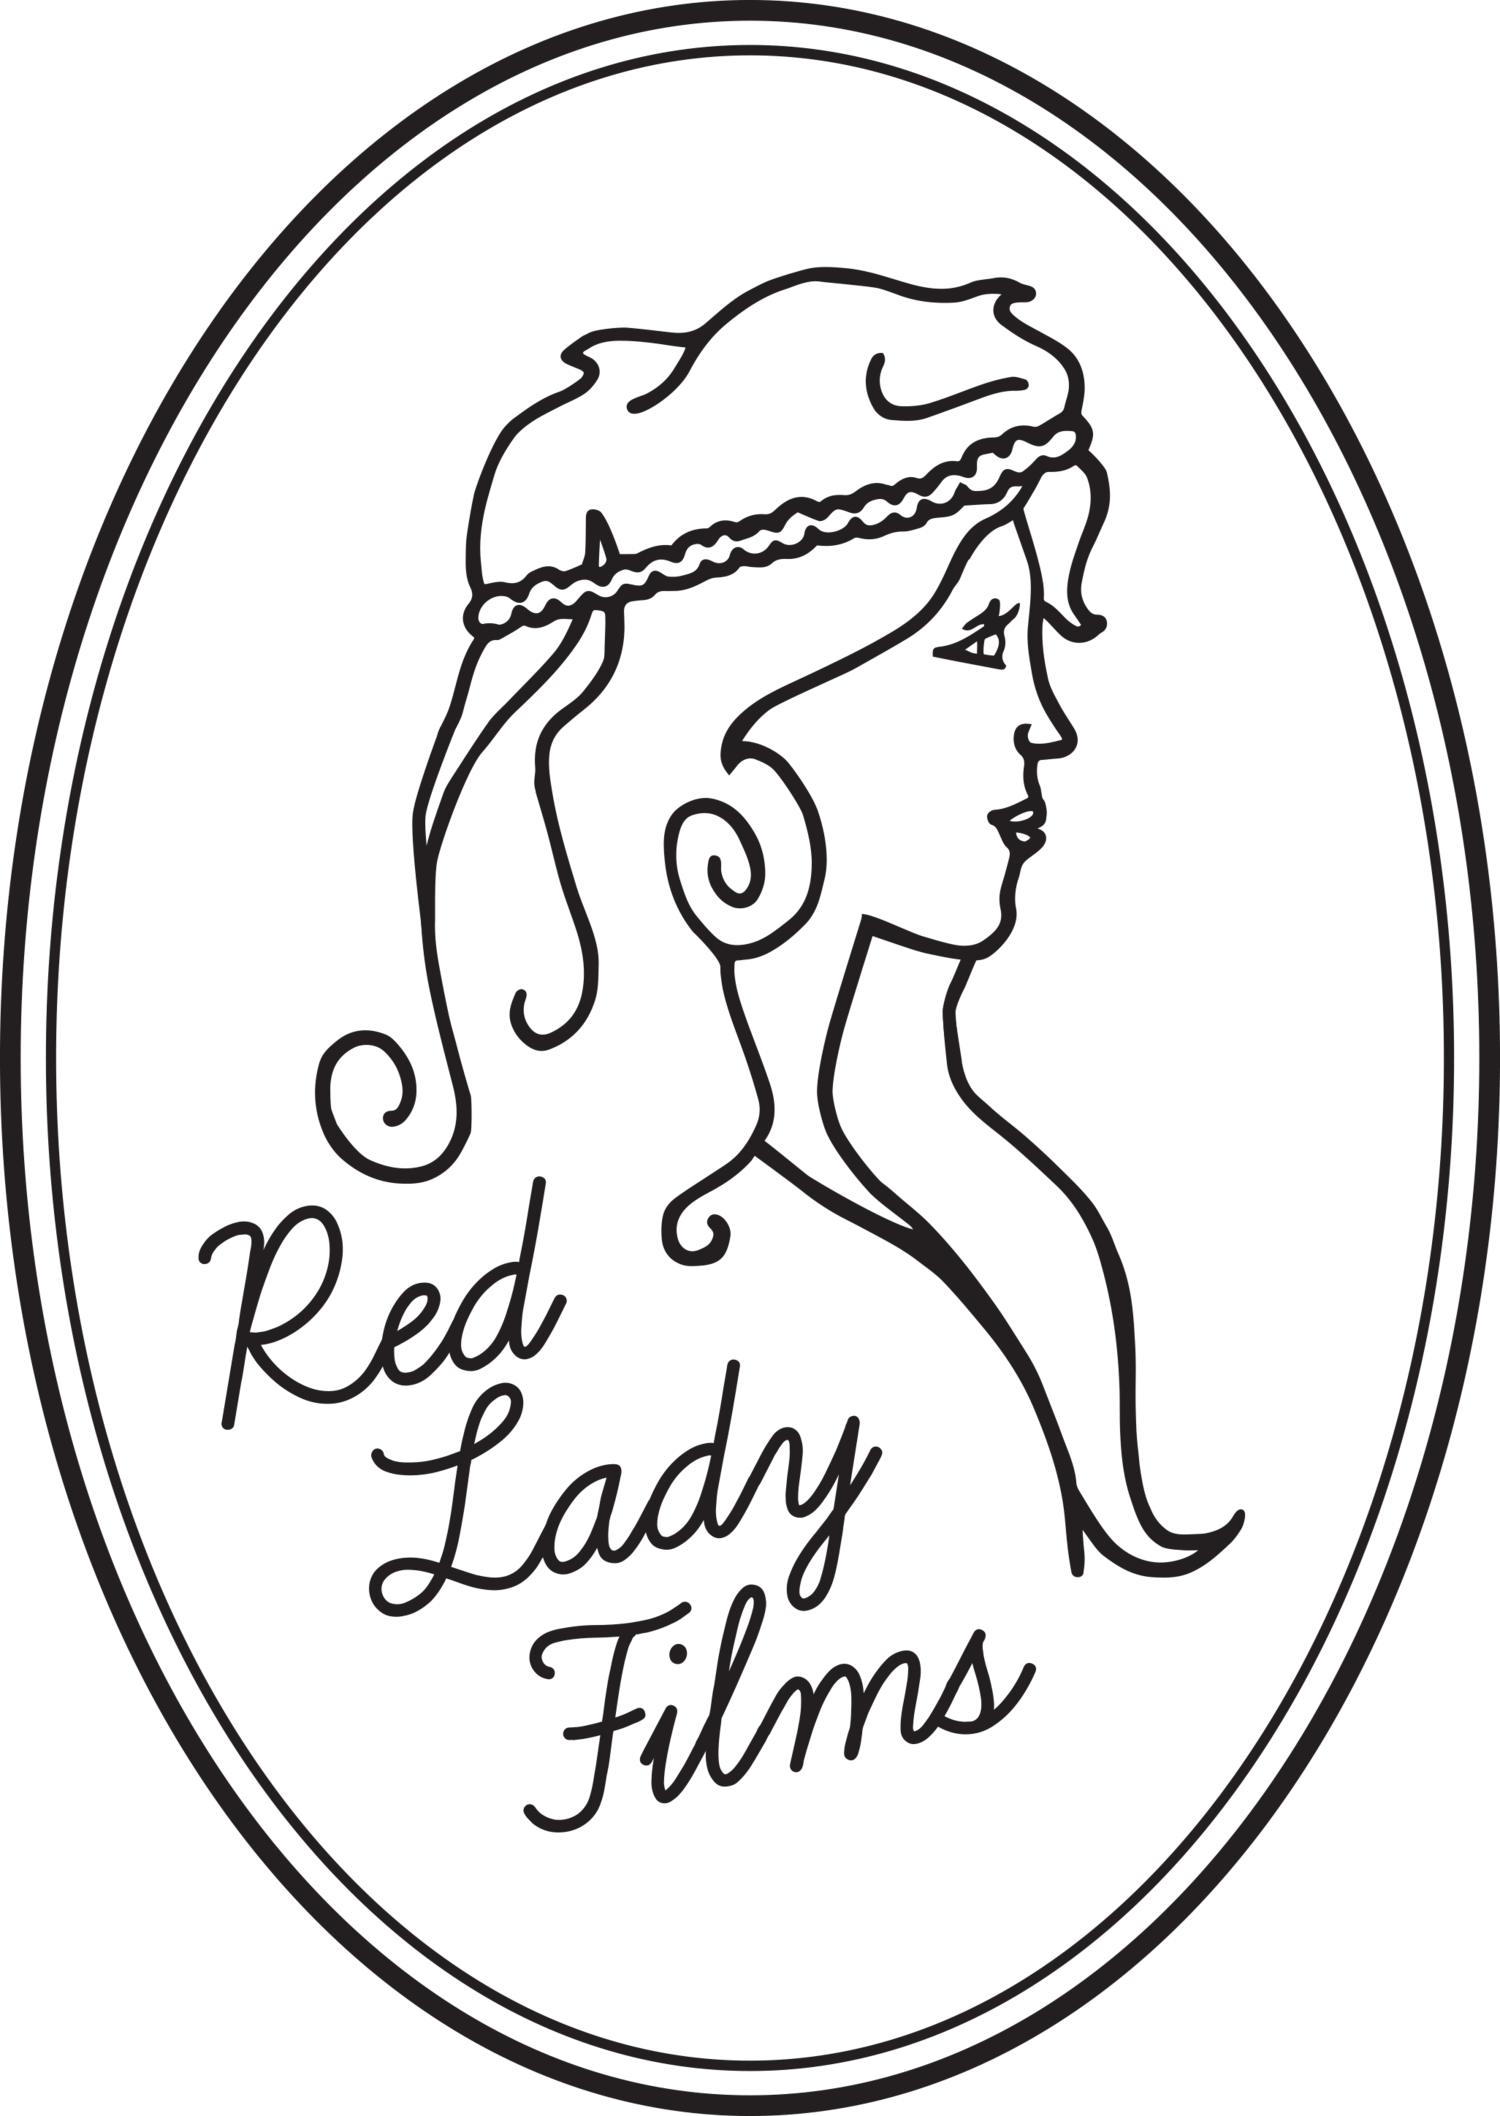 RED LADY FILMS